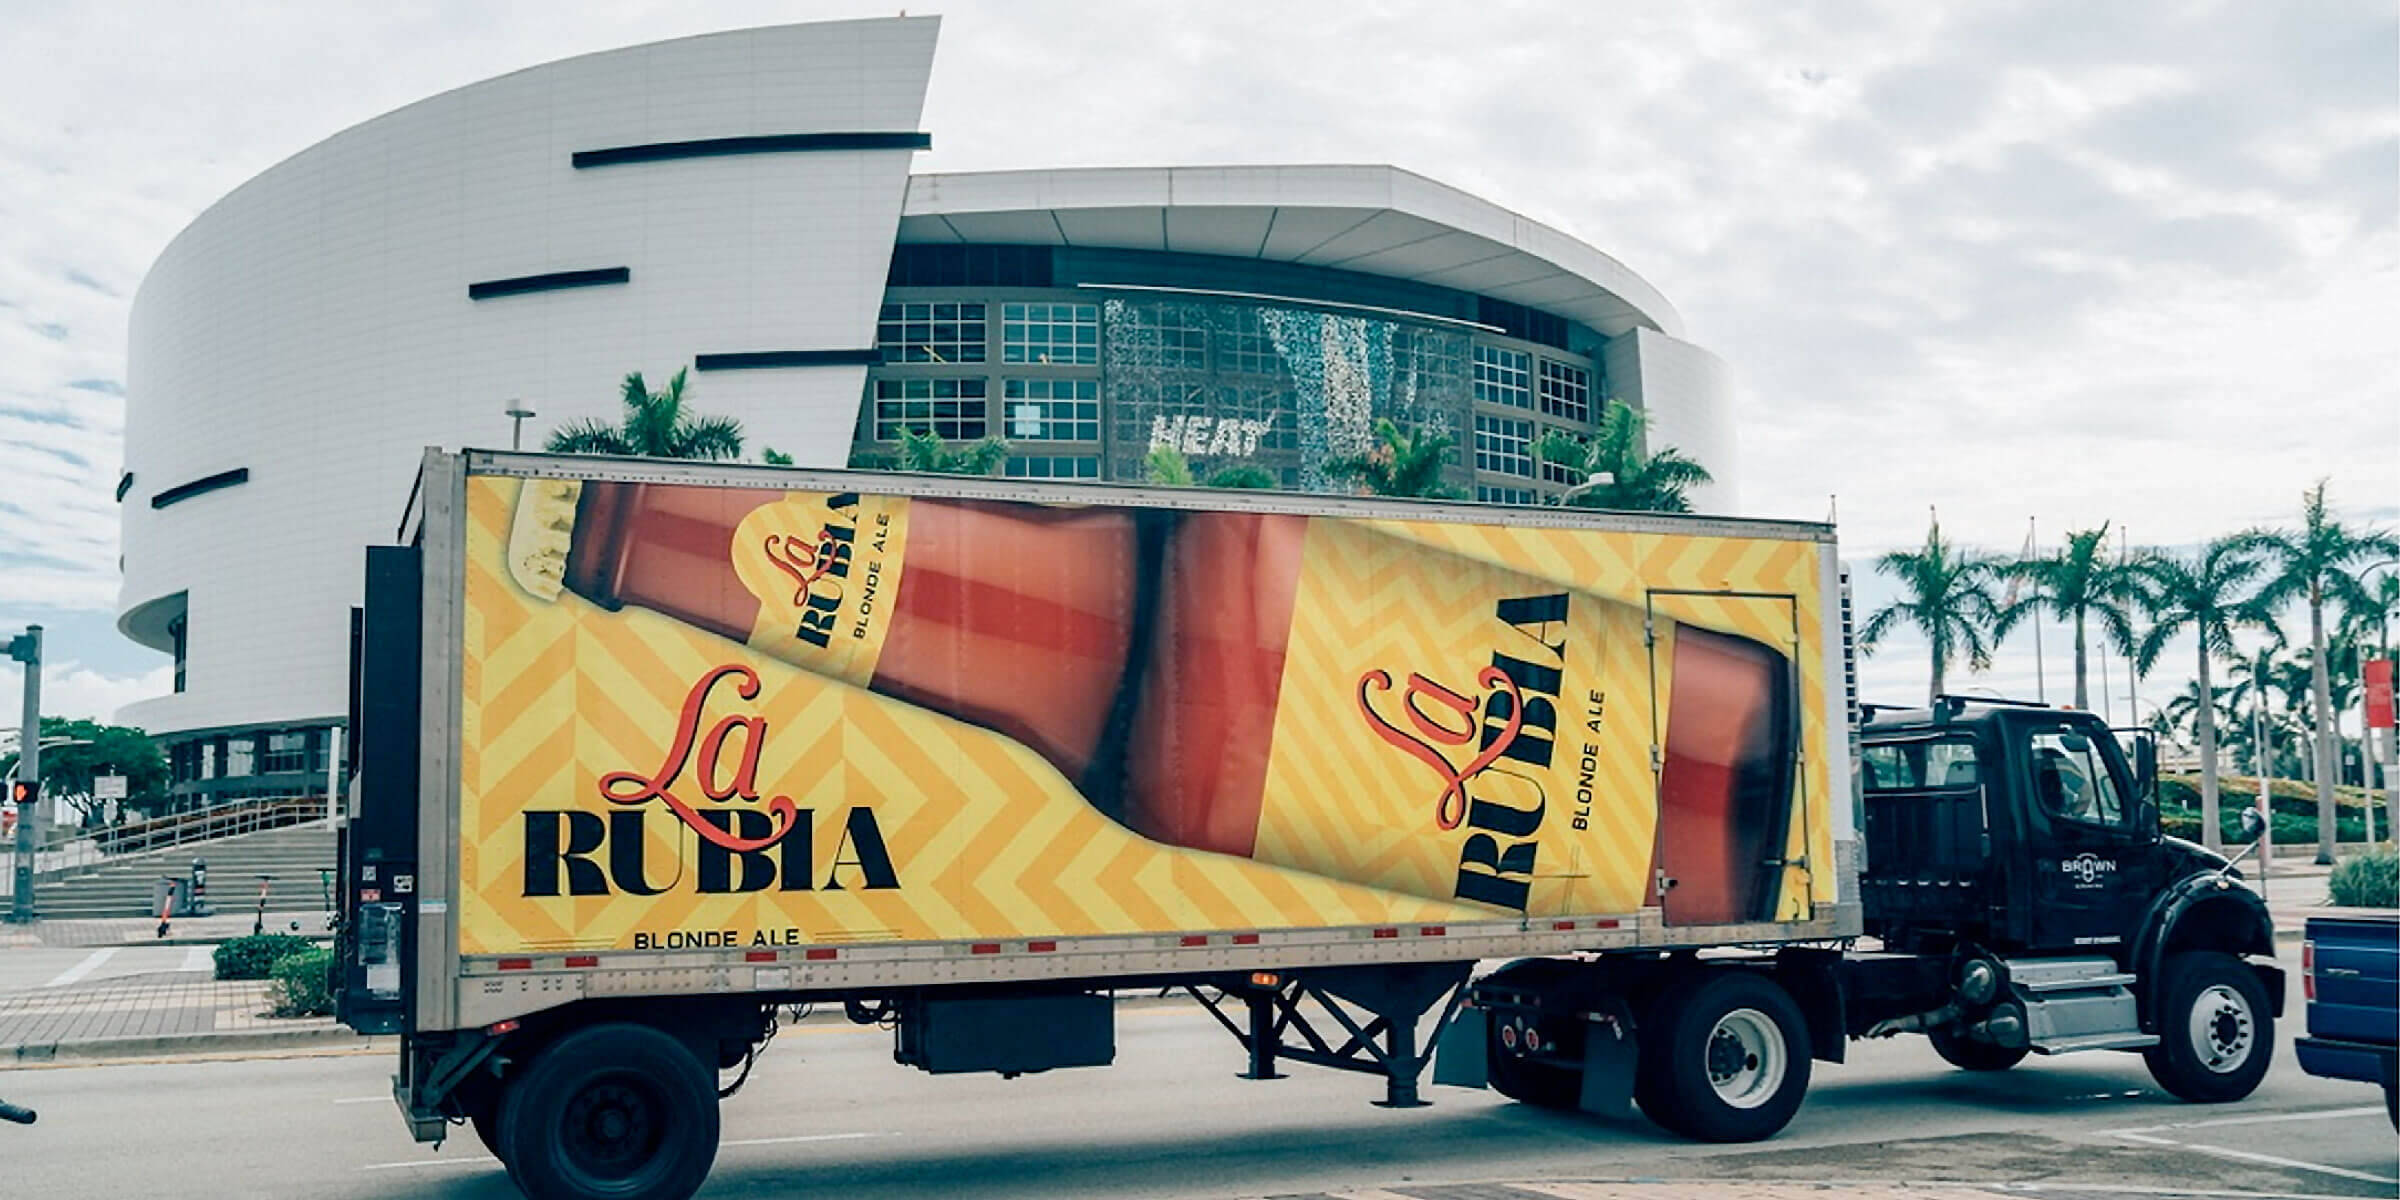 As the NBA season heats up, HEAT fans can cool off with Wynwood Brewing beers as part of a three-year partnership as the Official Craft Beer of the Miami HEAT.